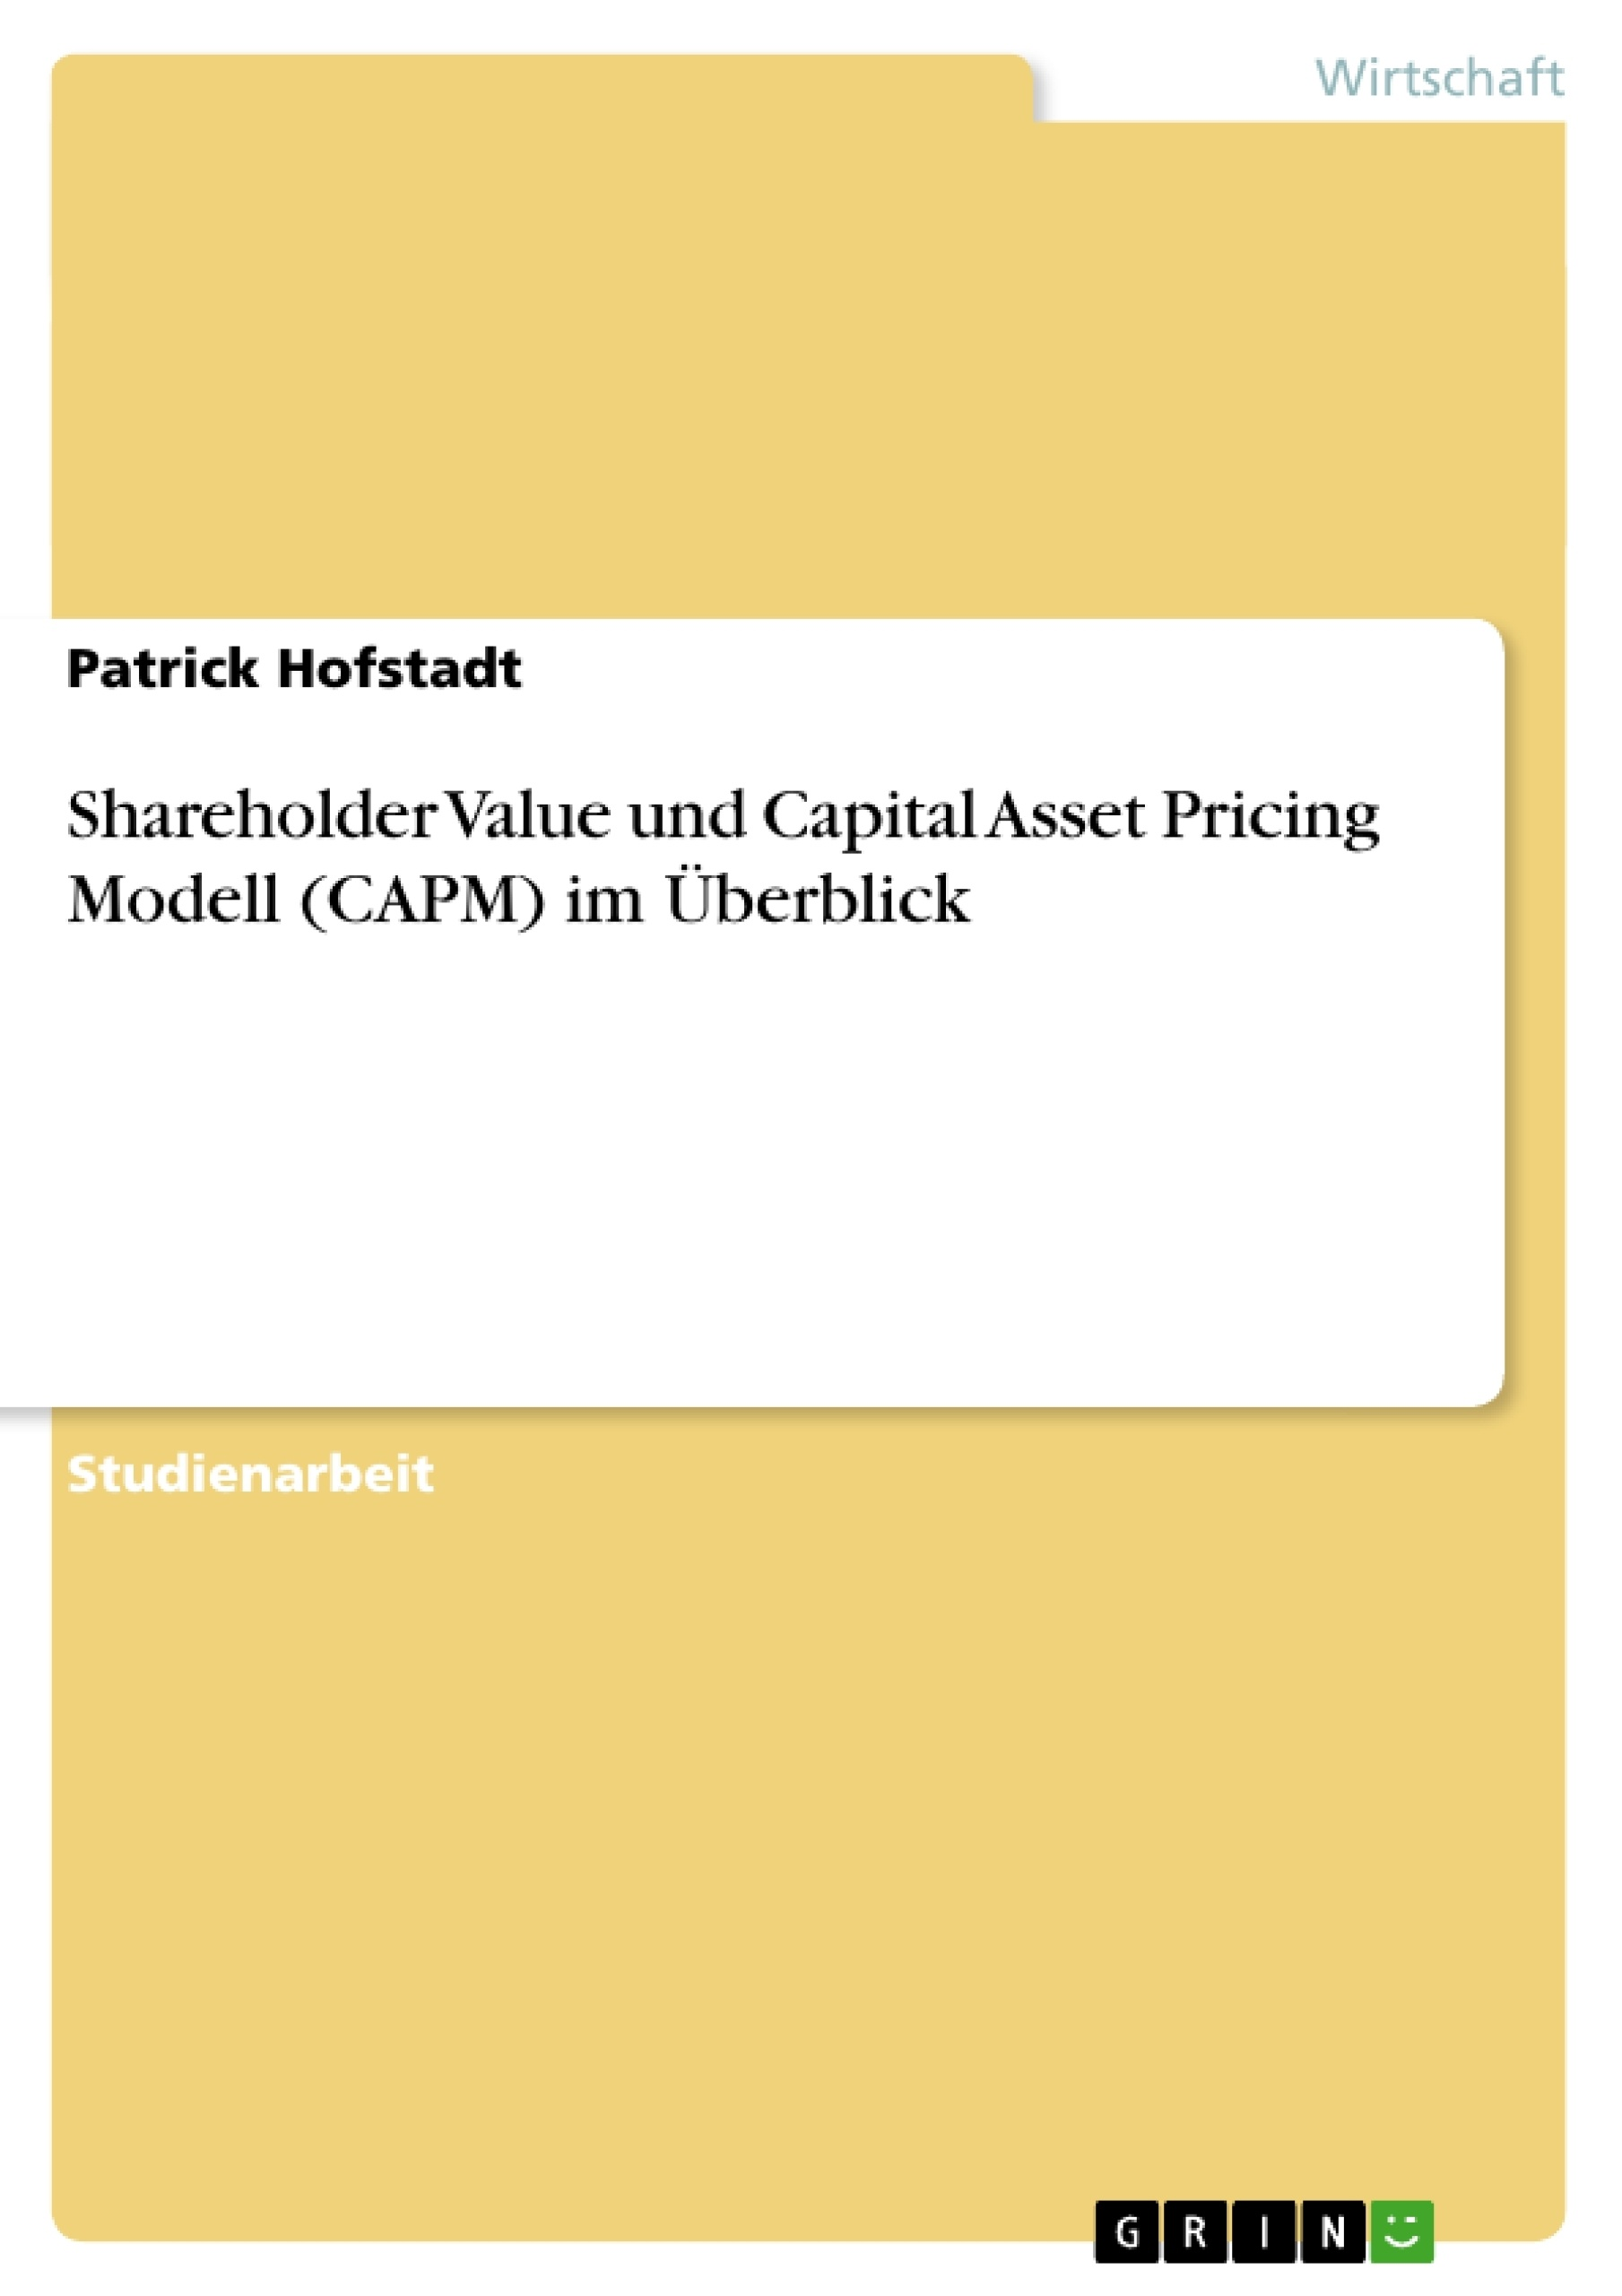 Titel: Shareholder Value und Capital Asset Pricing Modell (CAPM) im Überblick